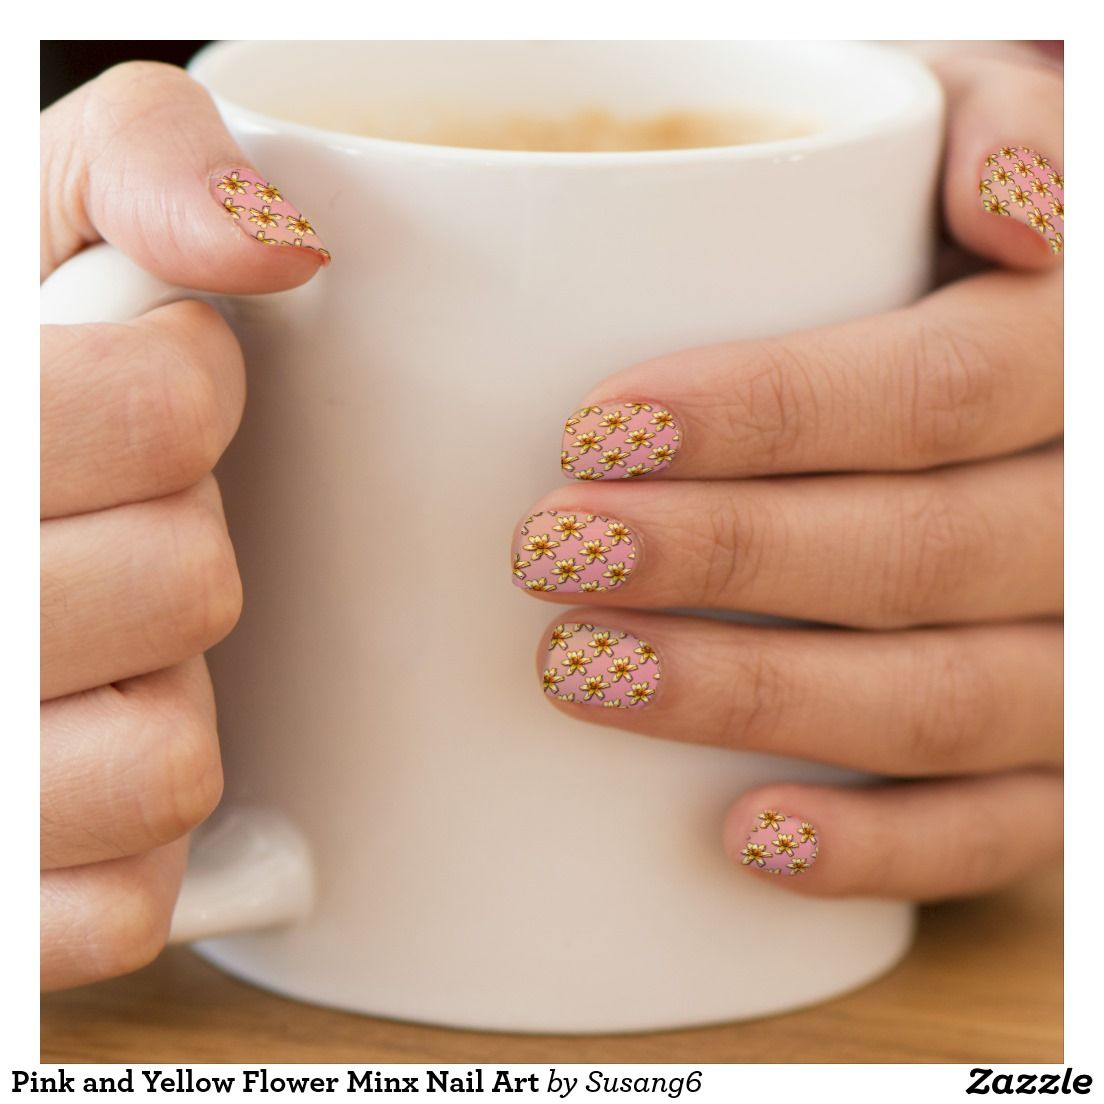 Pink and Yellow Flower Minx Nail Art